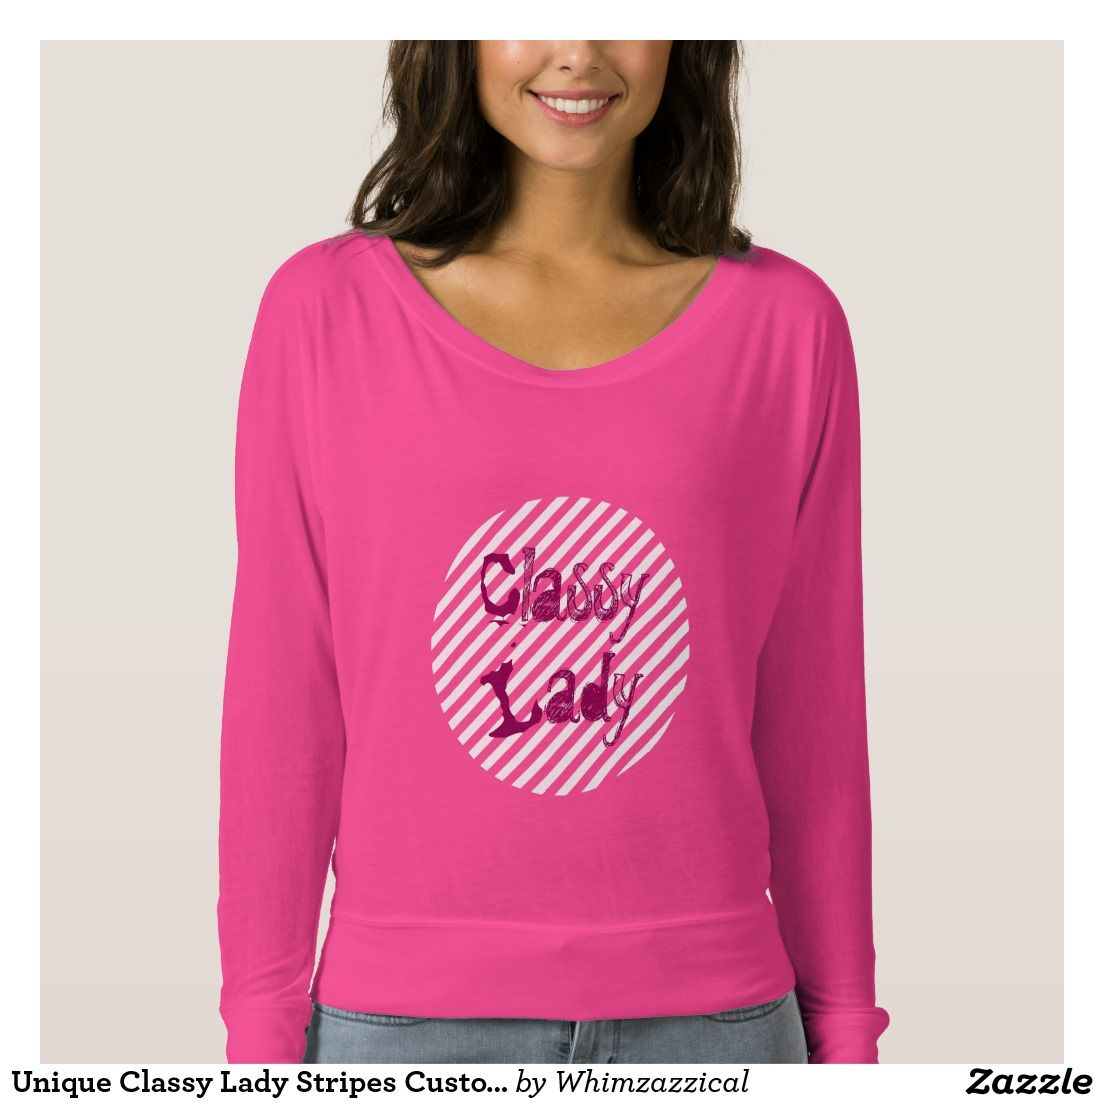 Unique Classy Lady Stripes Customizable Tshirts